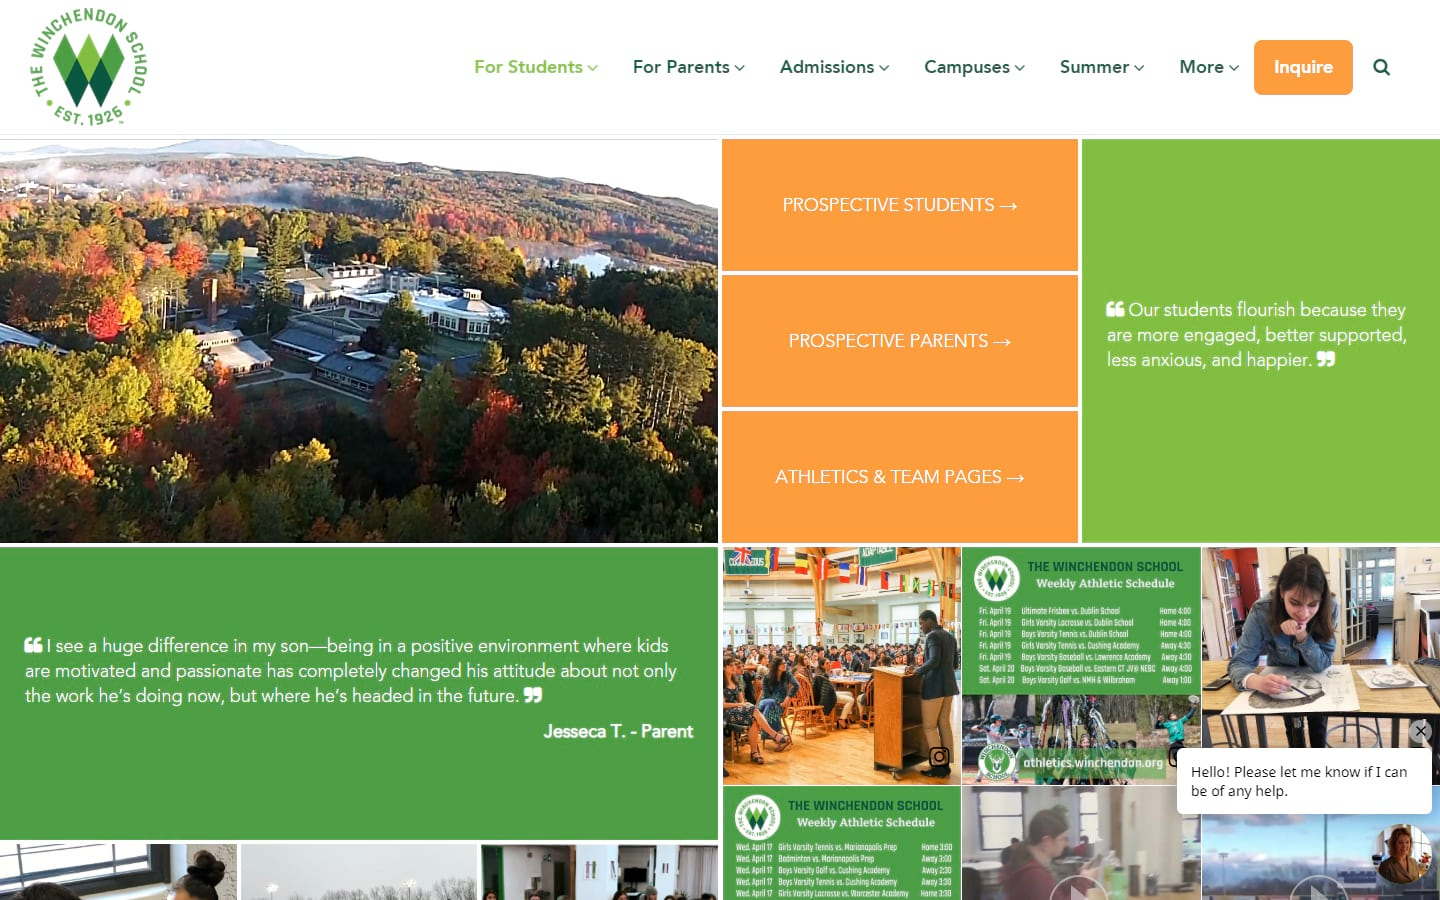 winchendon.org website screenshot